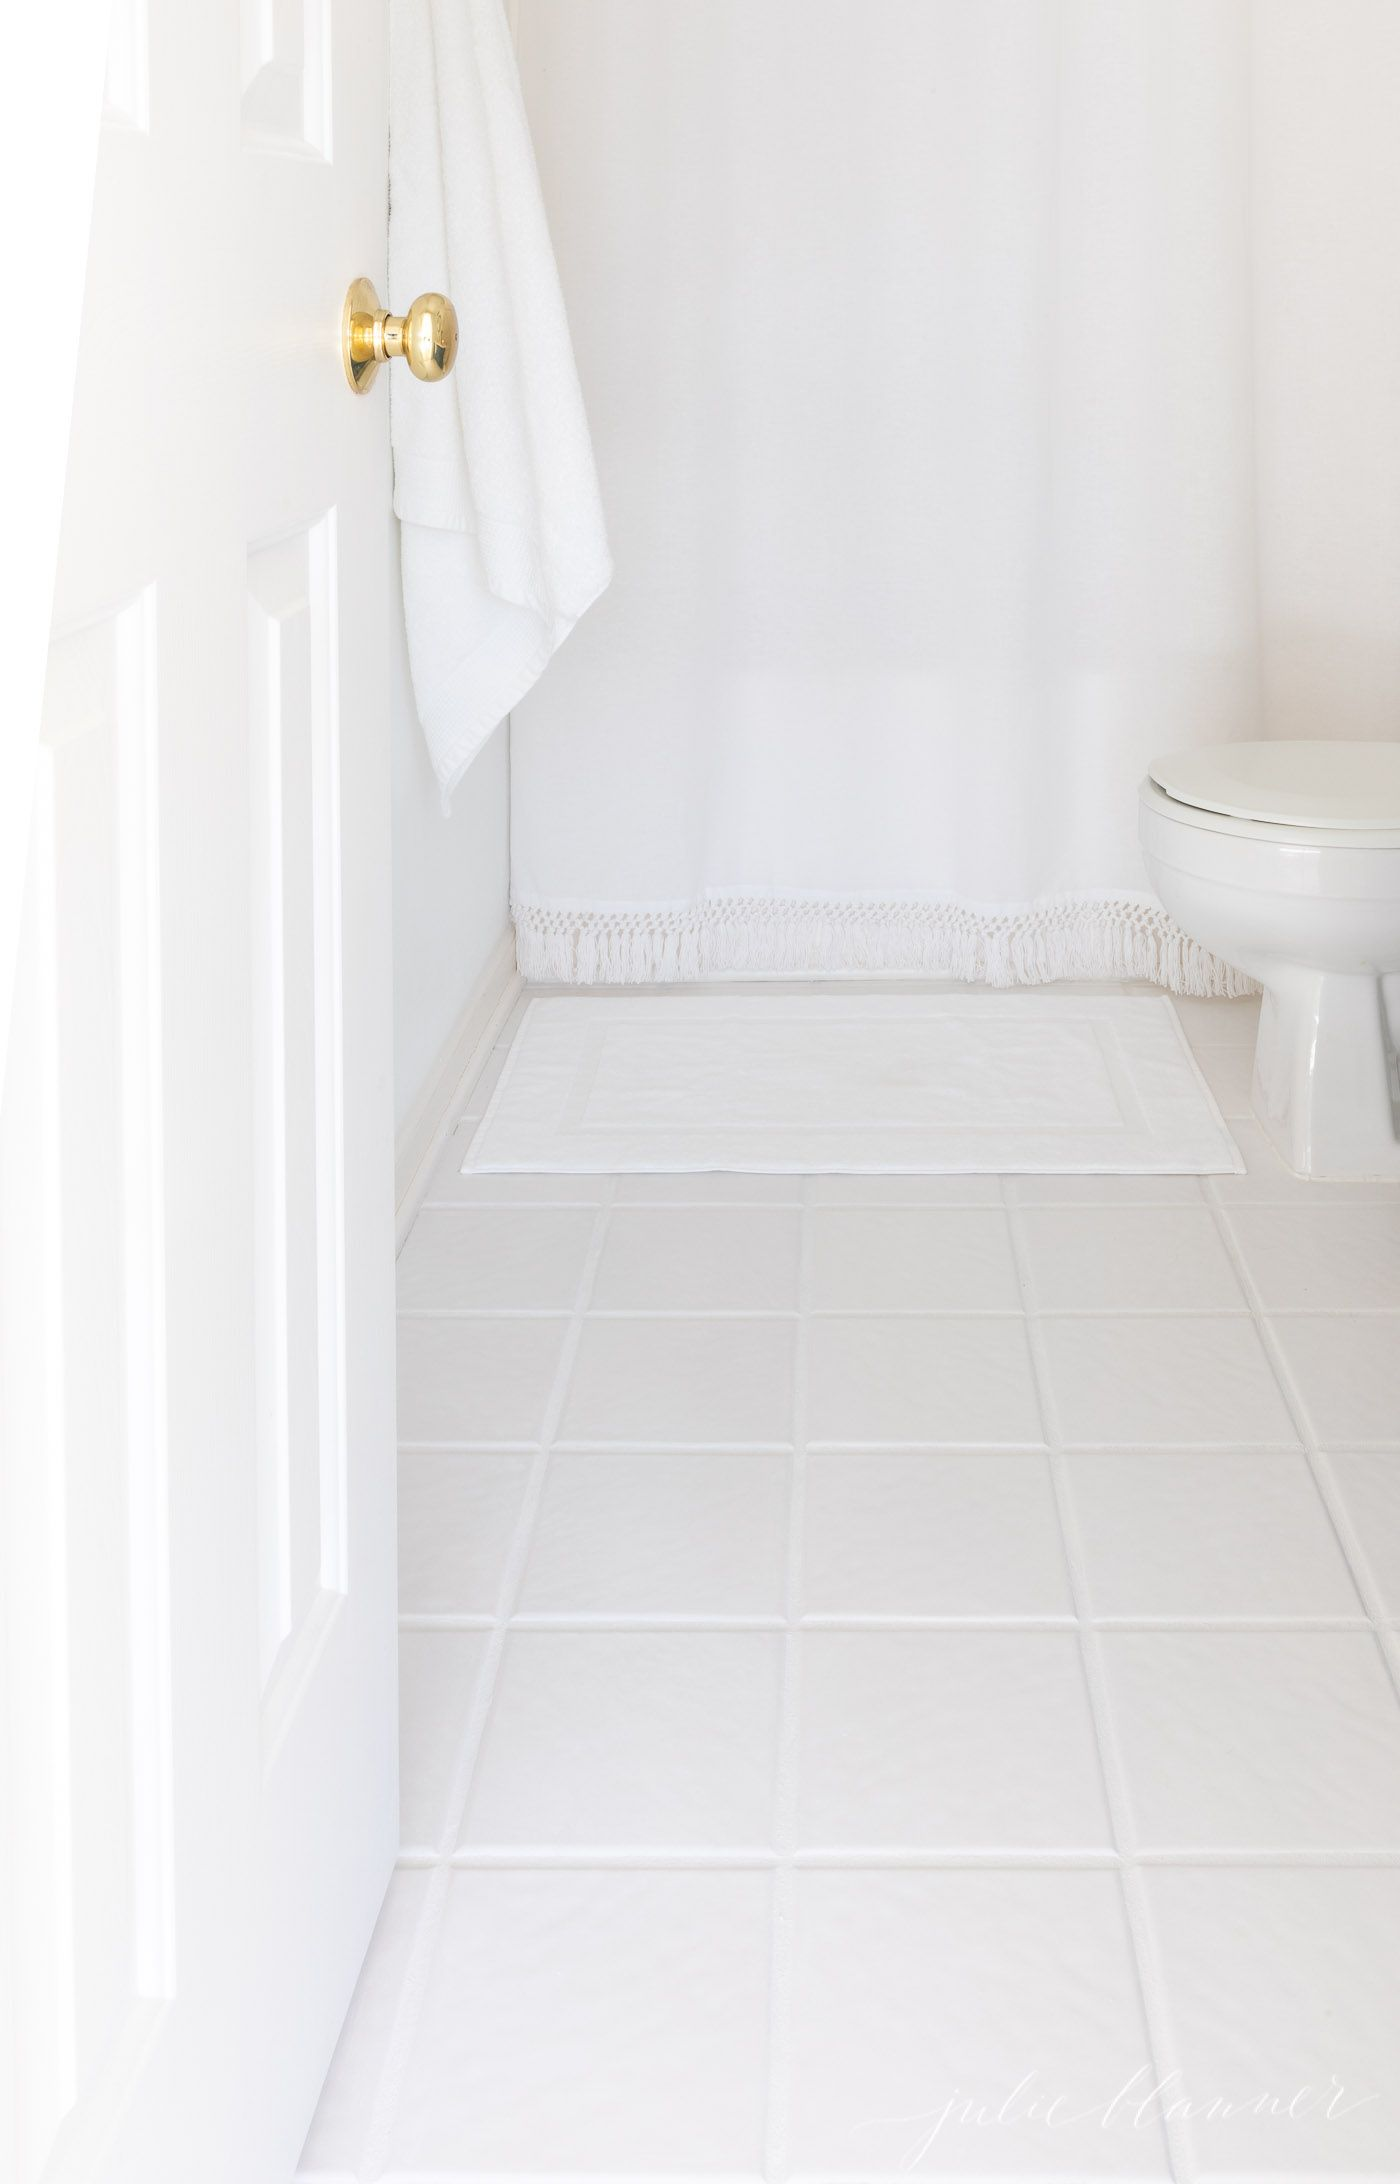 The Ultimate Tile Grout Refresh with Grout Stain Julie